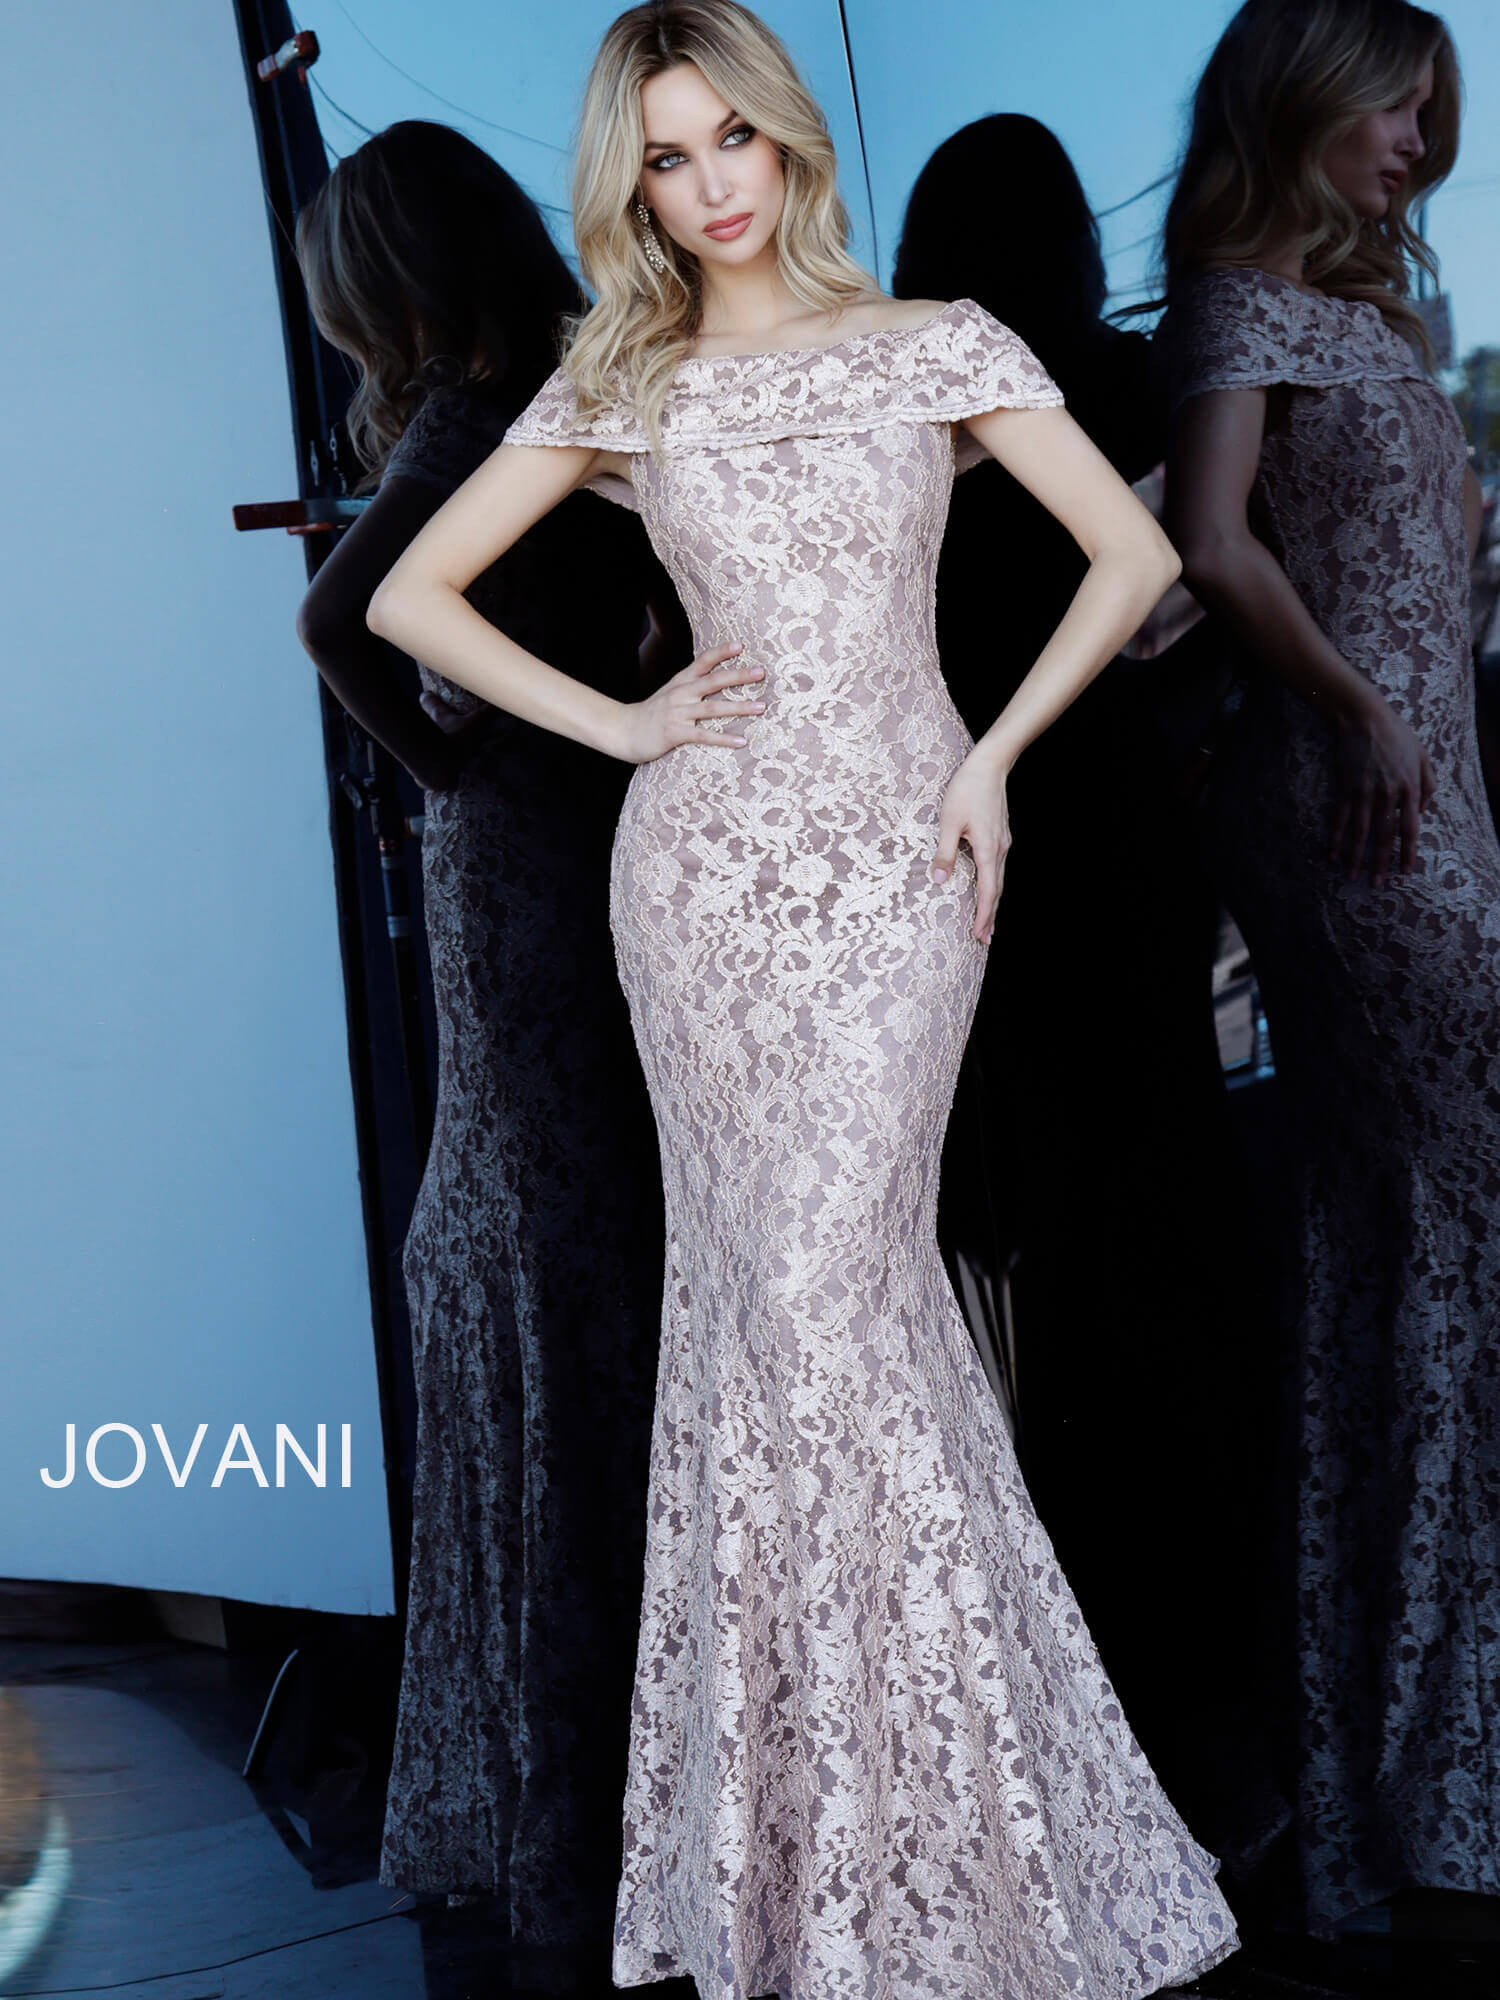 jovani Jovani 1814 Taupe Off the Shoulder Fitted Lace Evening Dress